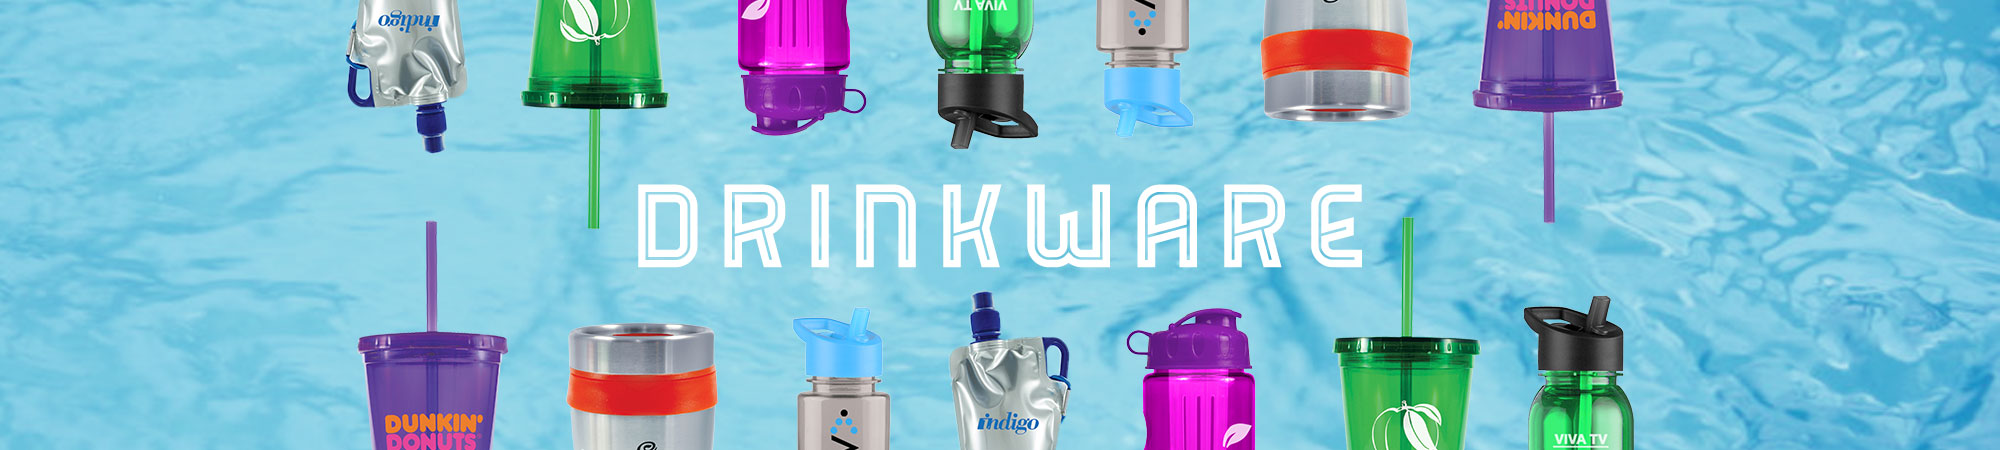 Drinkware Showroom